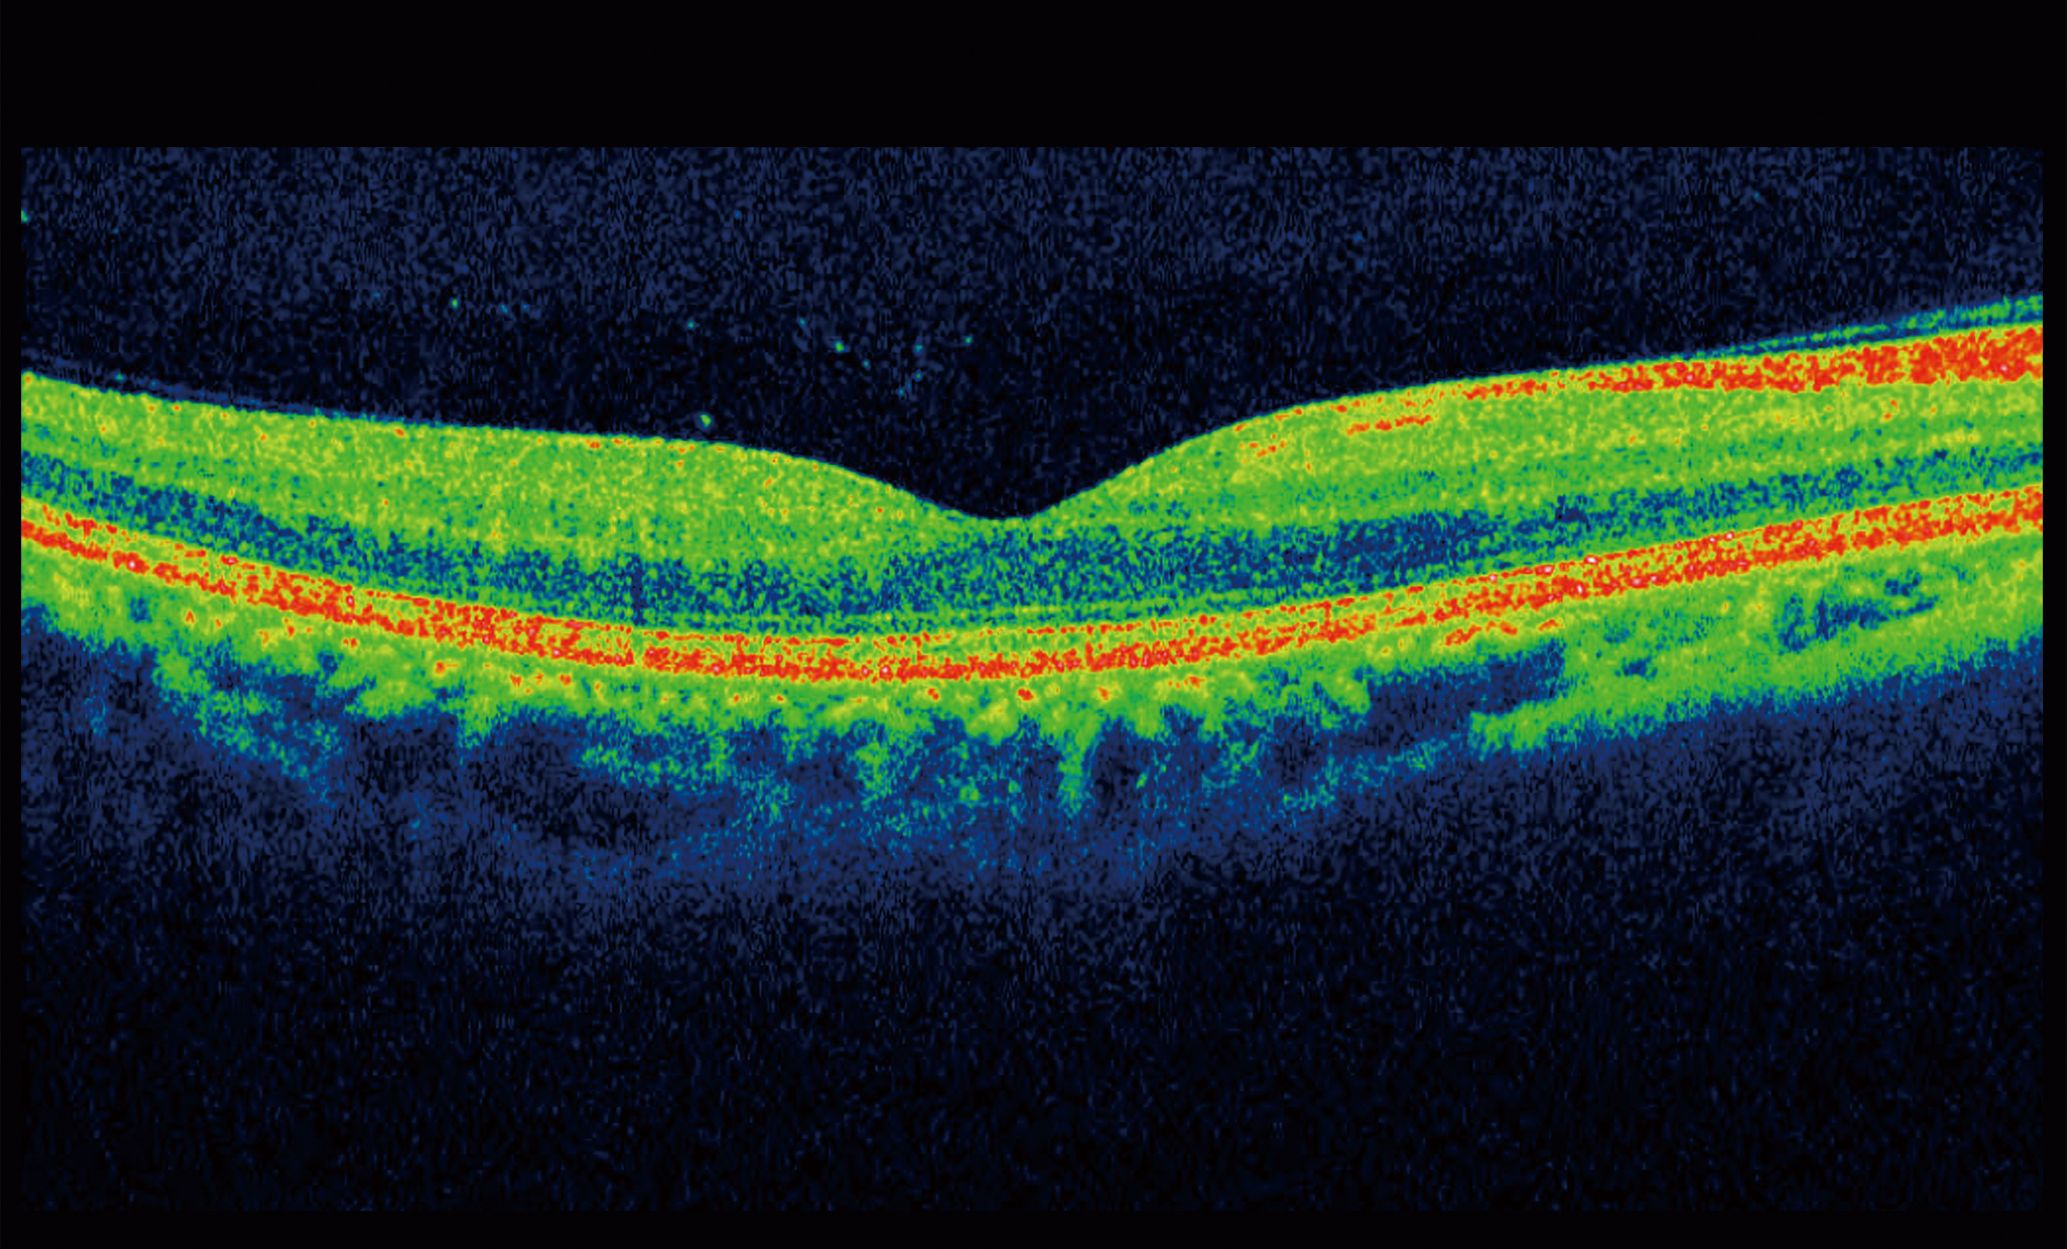 An example OCT scan image.